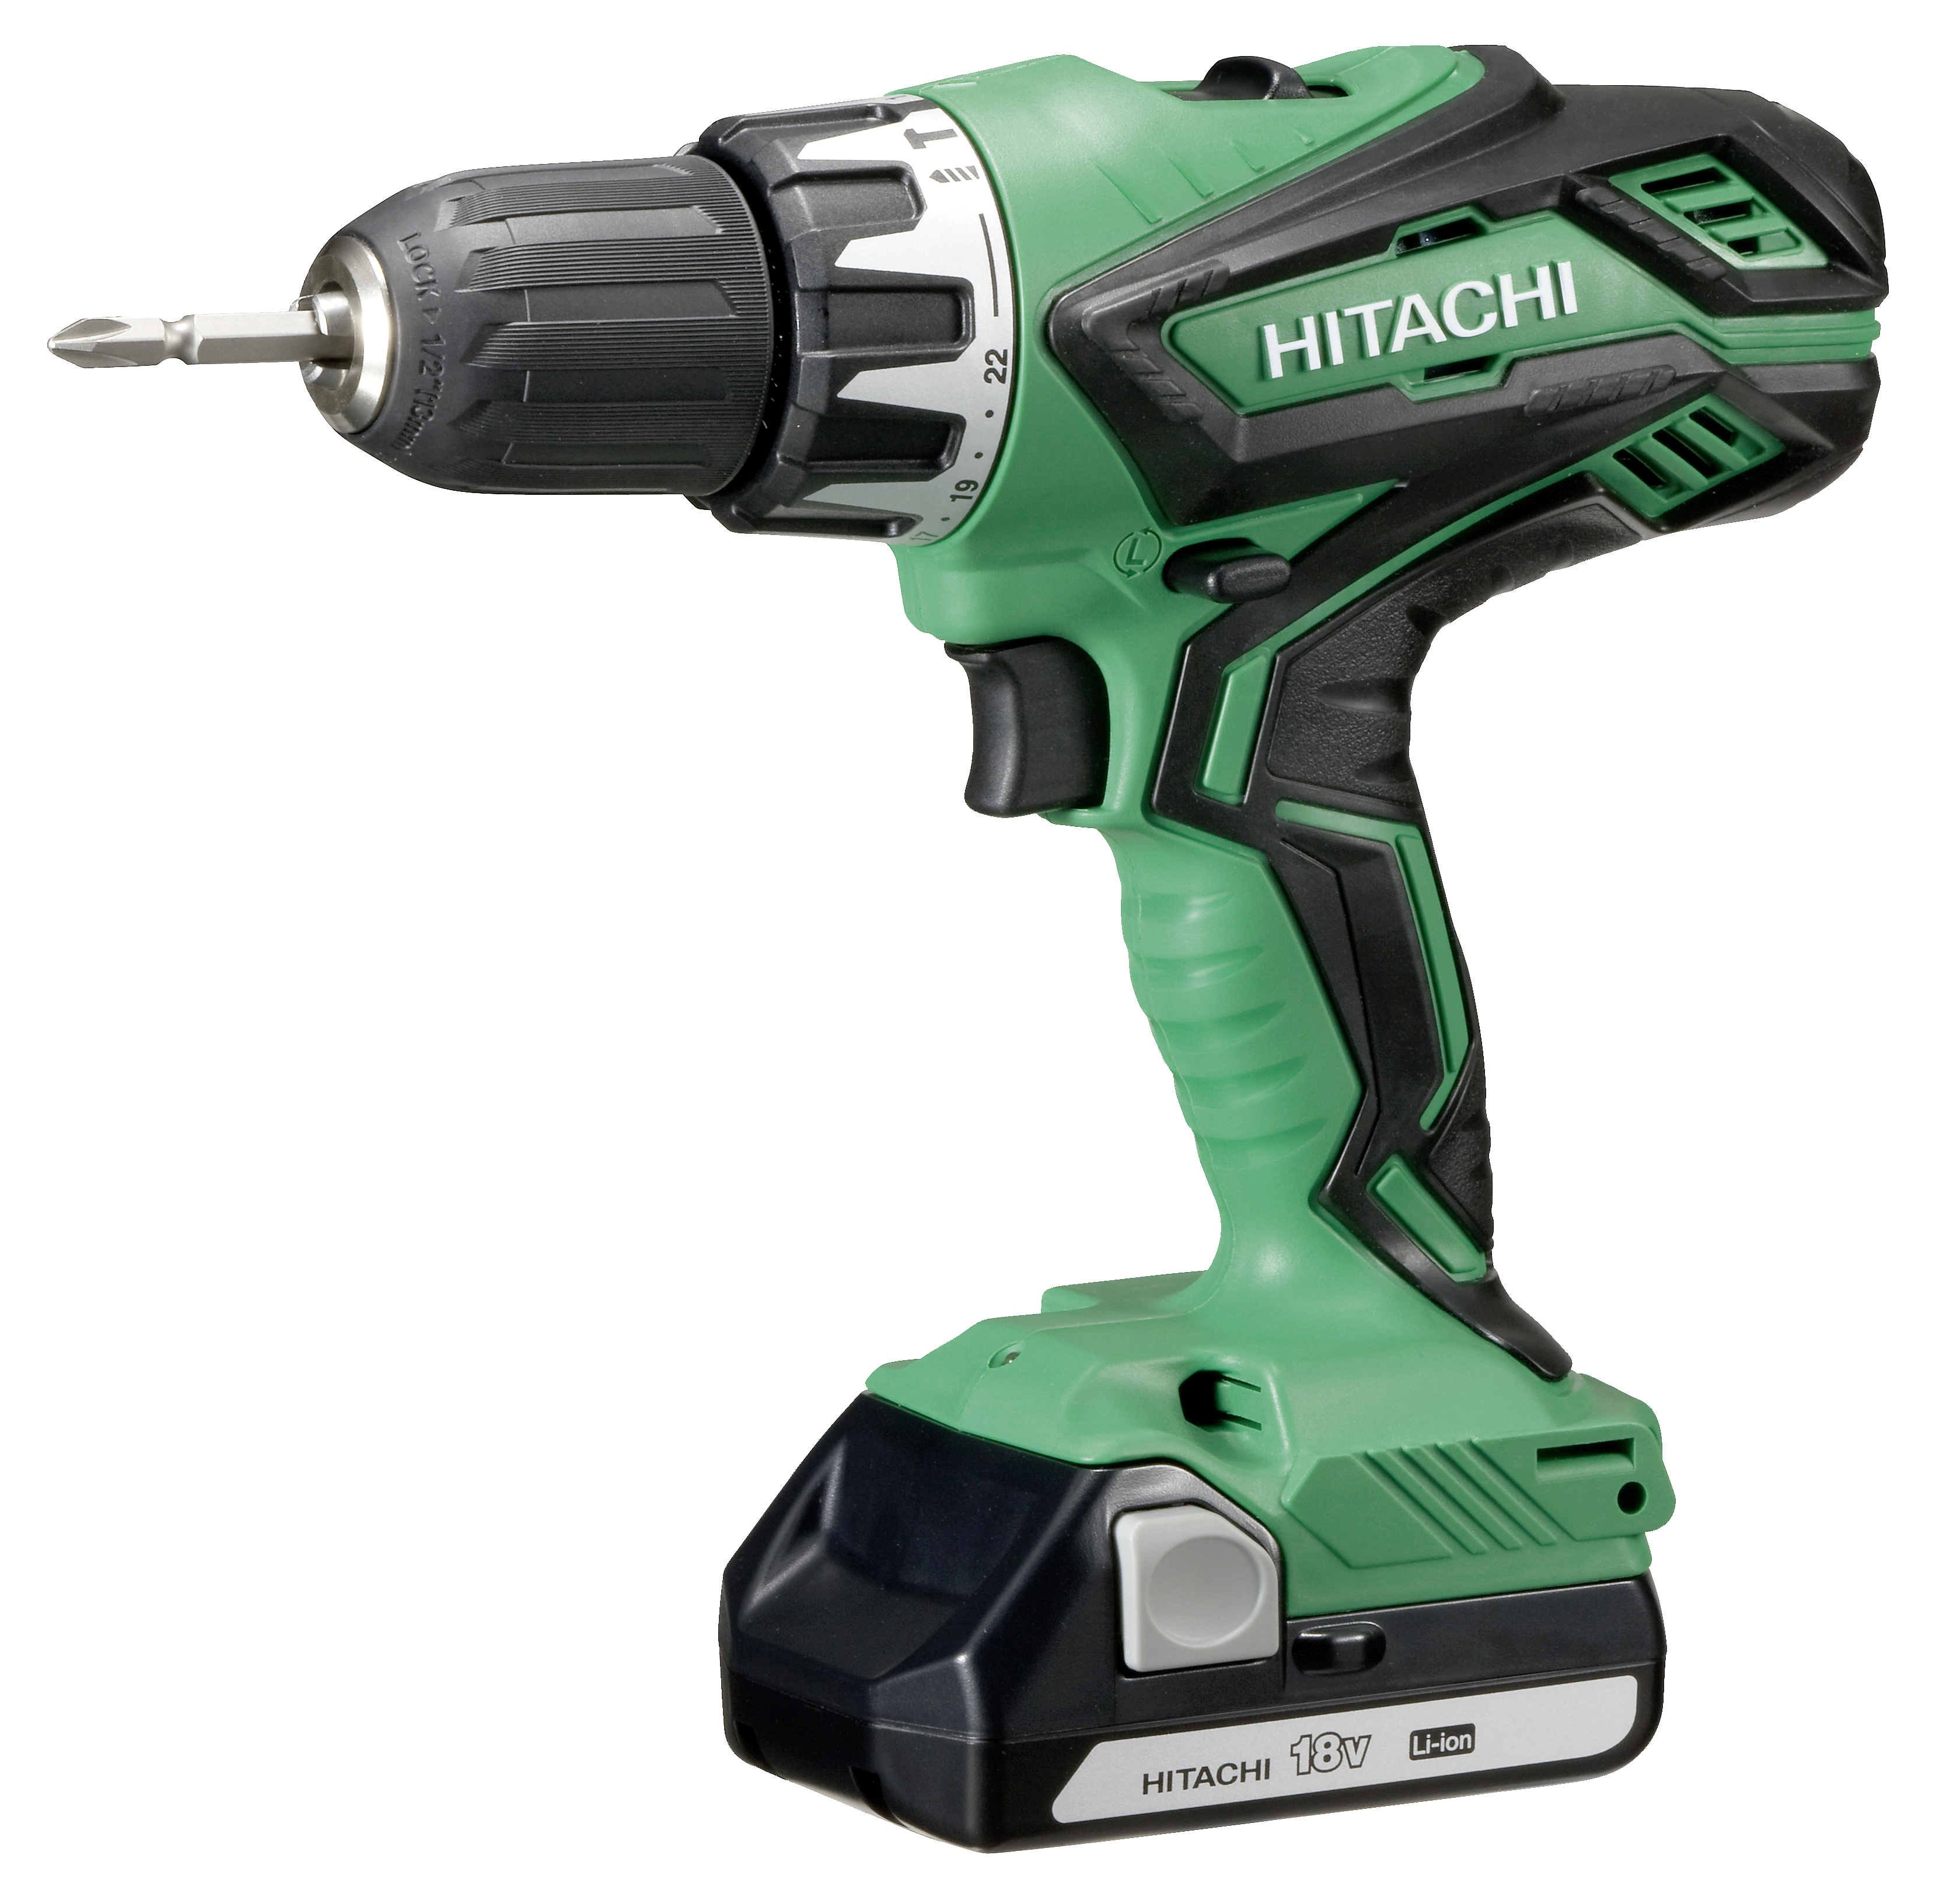 DV18DJL-Drill-Percutor---Screwdriver-18-V-Lithium-Sliding